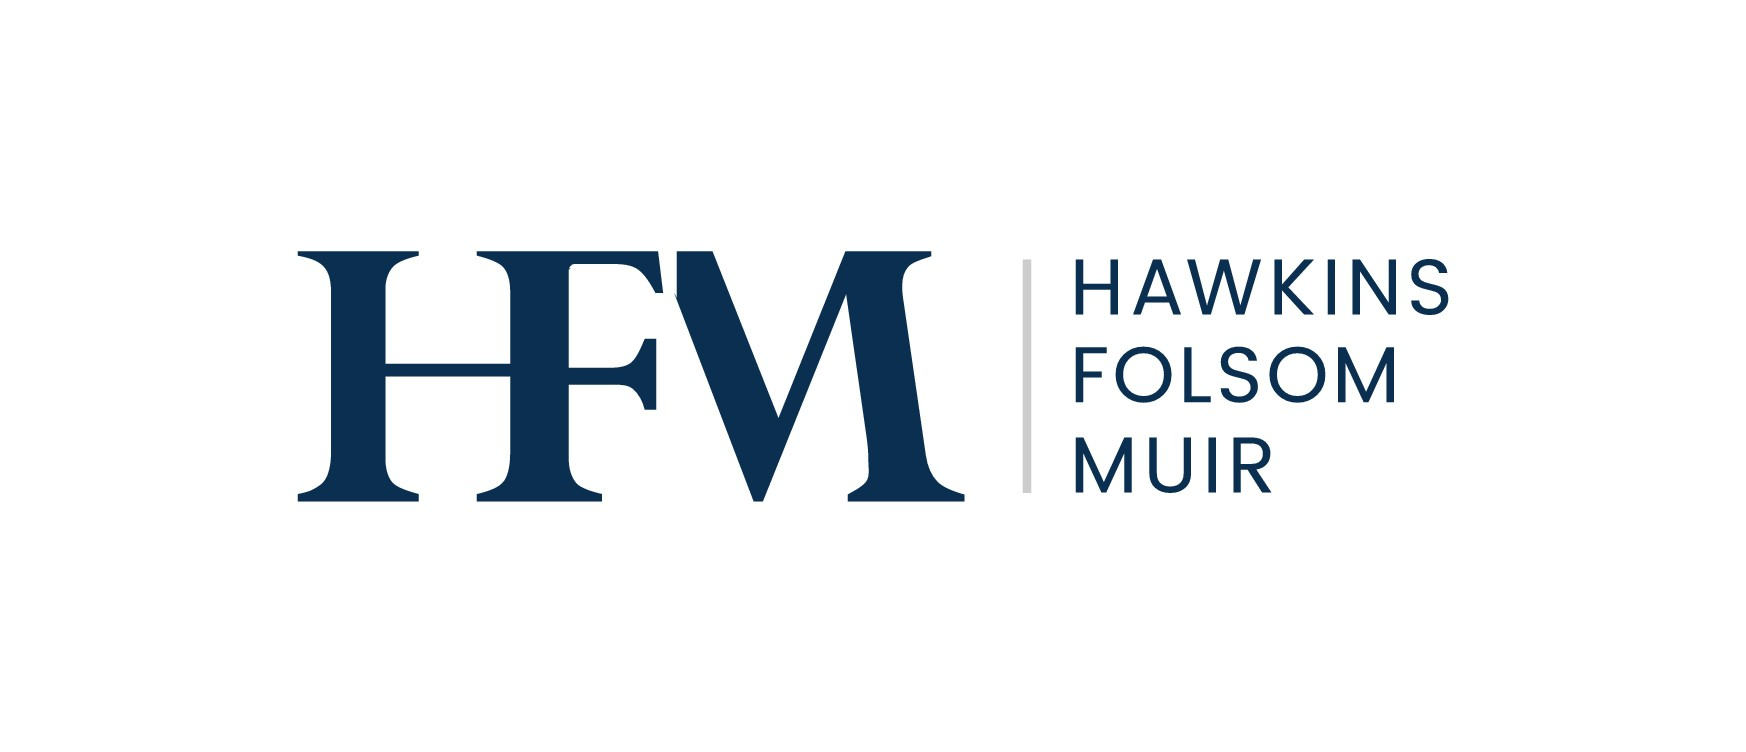 Distinguished Law Firm needs new logo